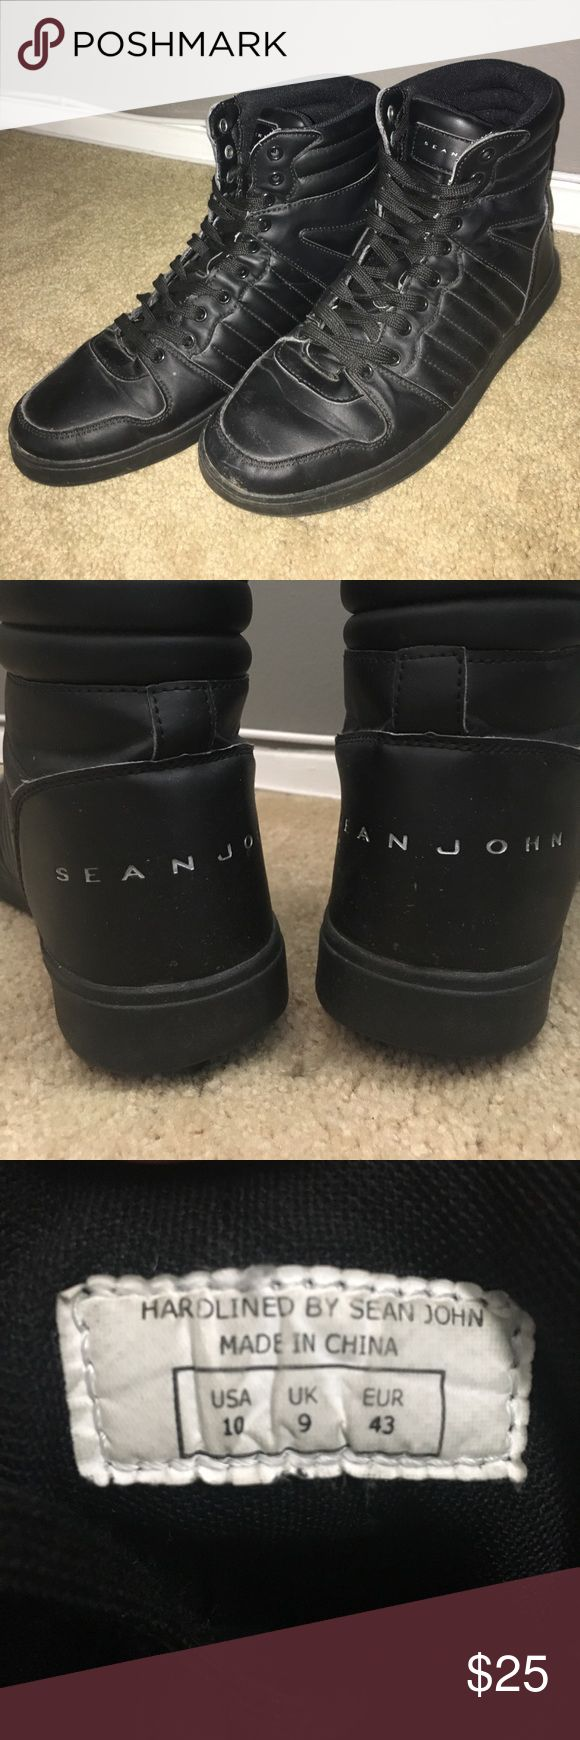 Sean John Mens high tops Size 10 men's high tops, quality black leather with silver embossed lettering, worn twice, great condition, price negotiable Sean John Shoes Sneakers